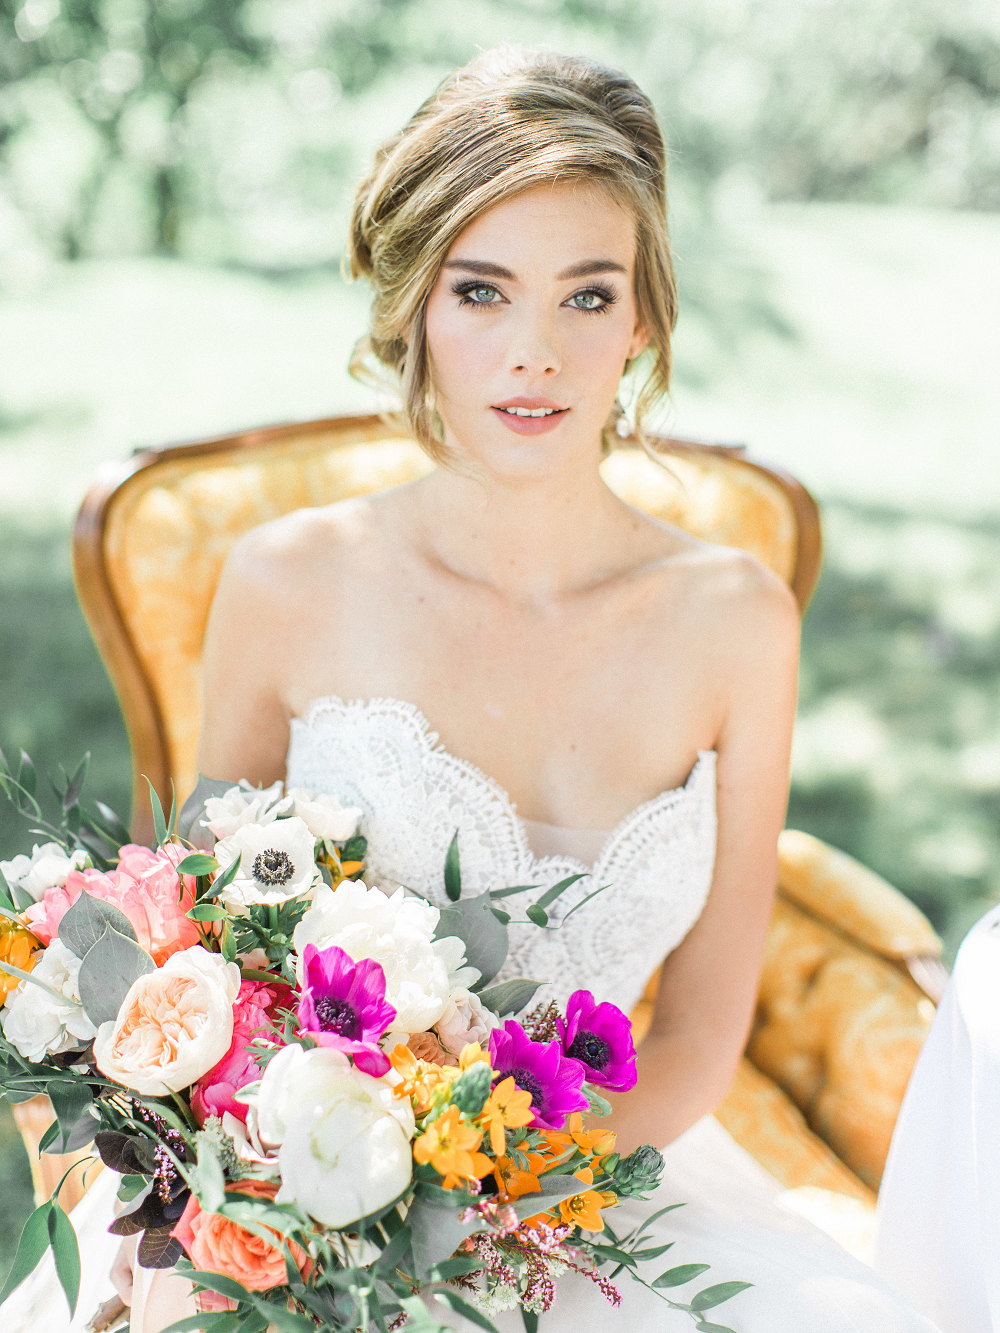 Whimsical Summer Wedding Styled Shoot at Henderson Castle Featured in WeddingDay Magazine Bride and Flowers